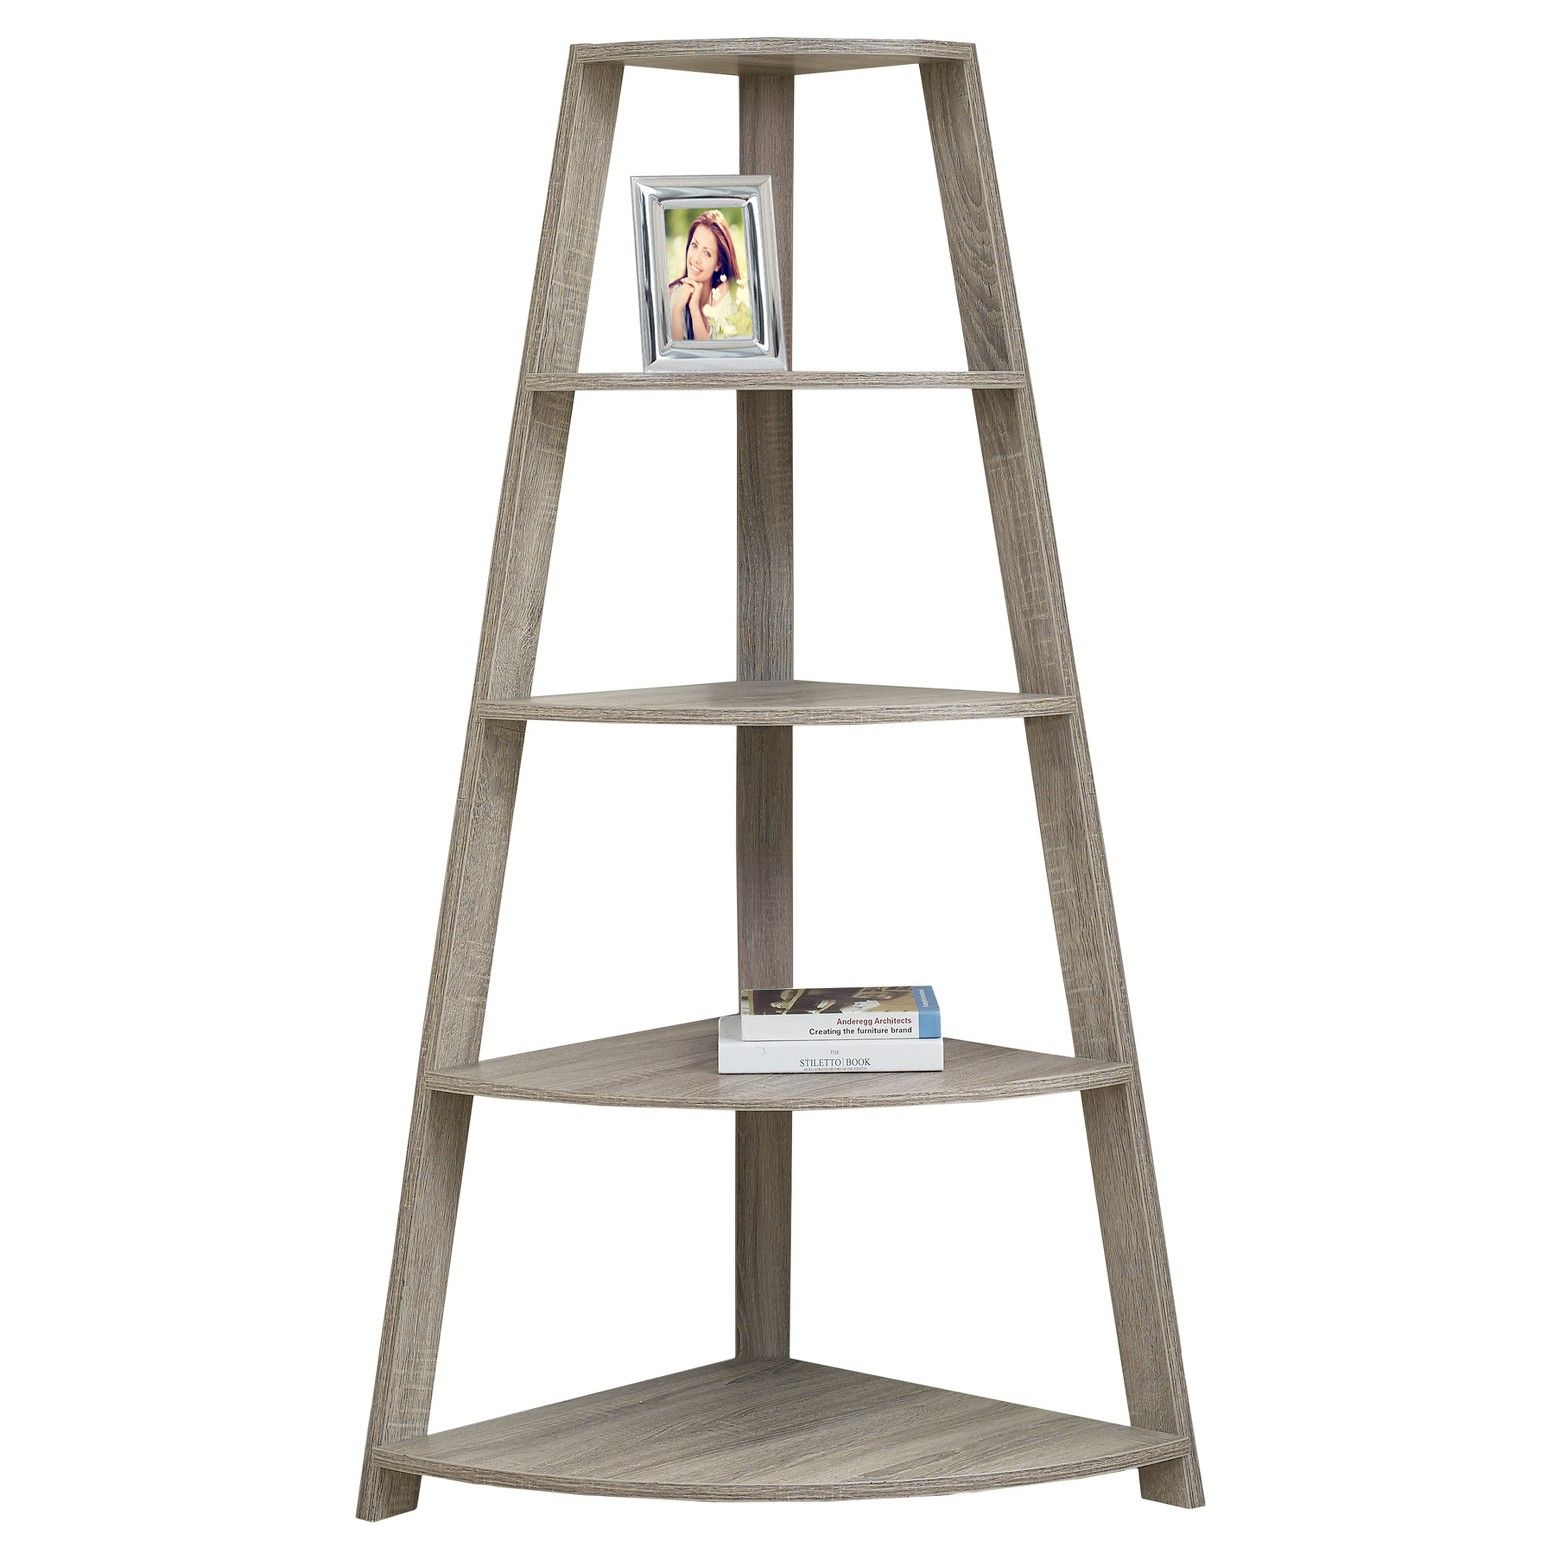 Shop Bookcases At Target Find A Wide Variety Of Styles From